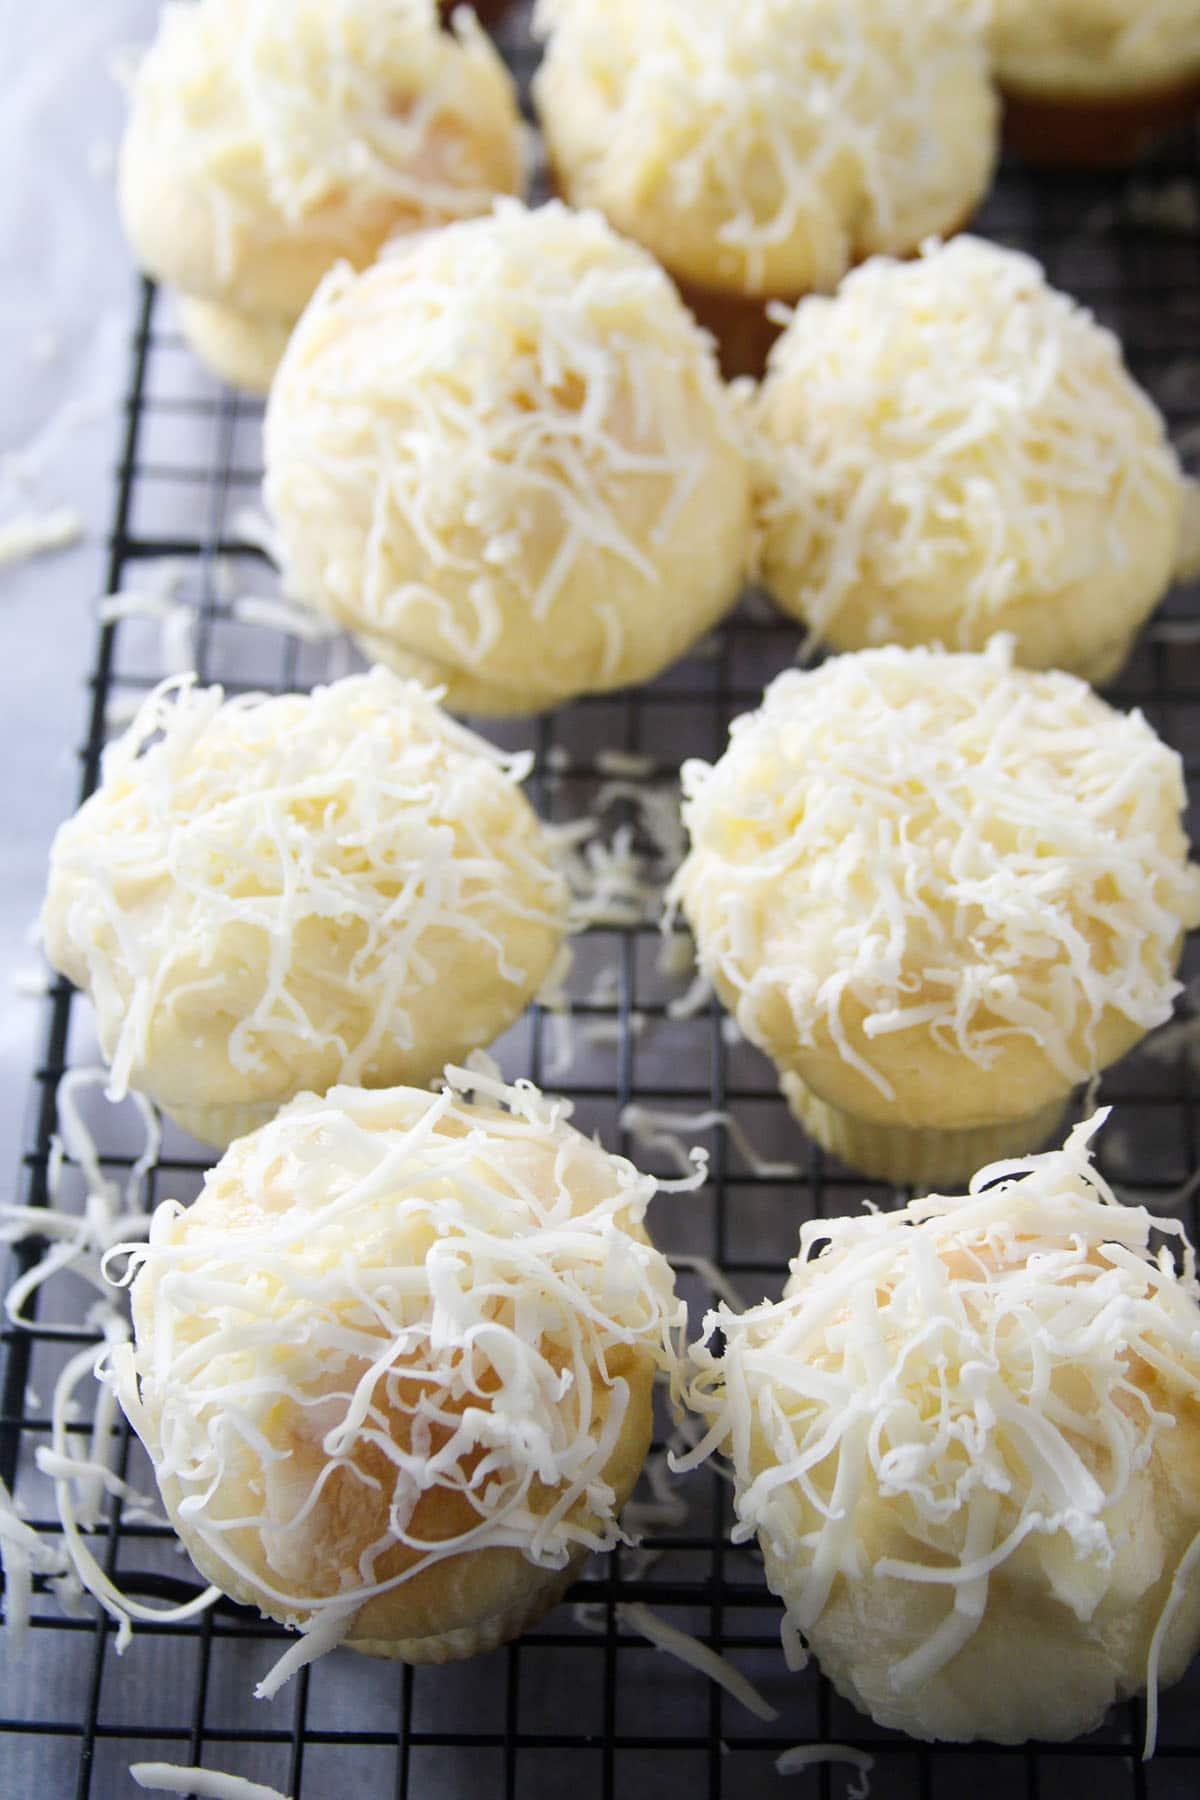 Ensaymada on a cooling rack.